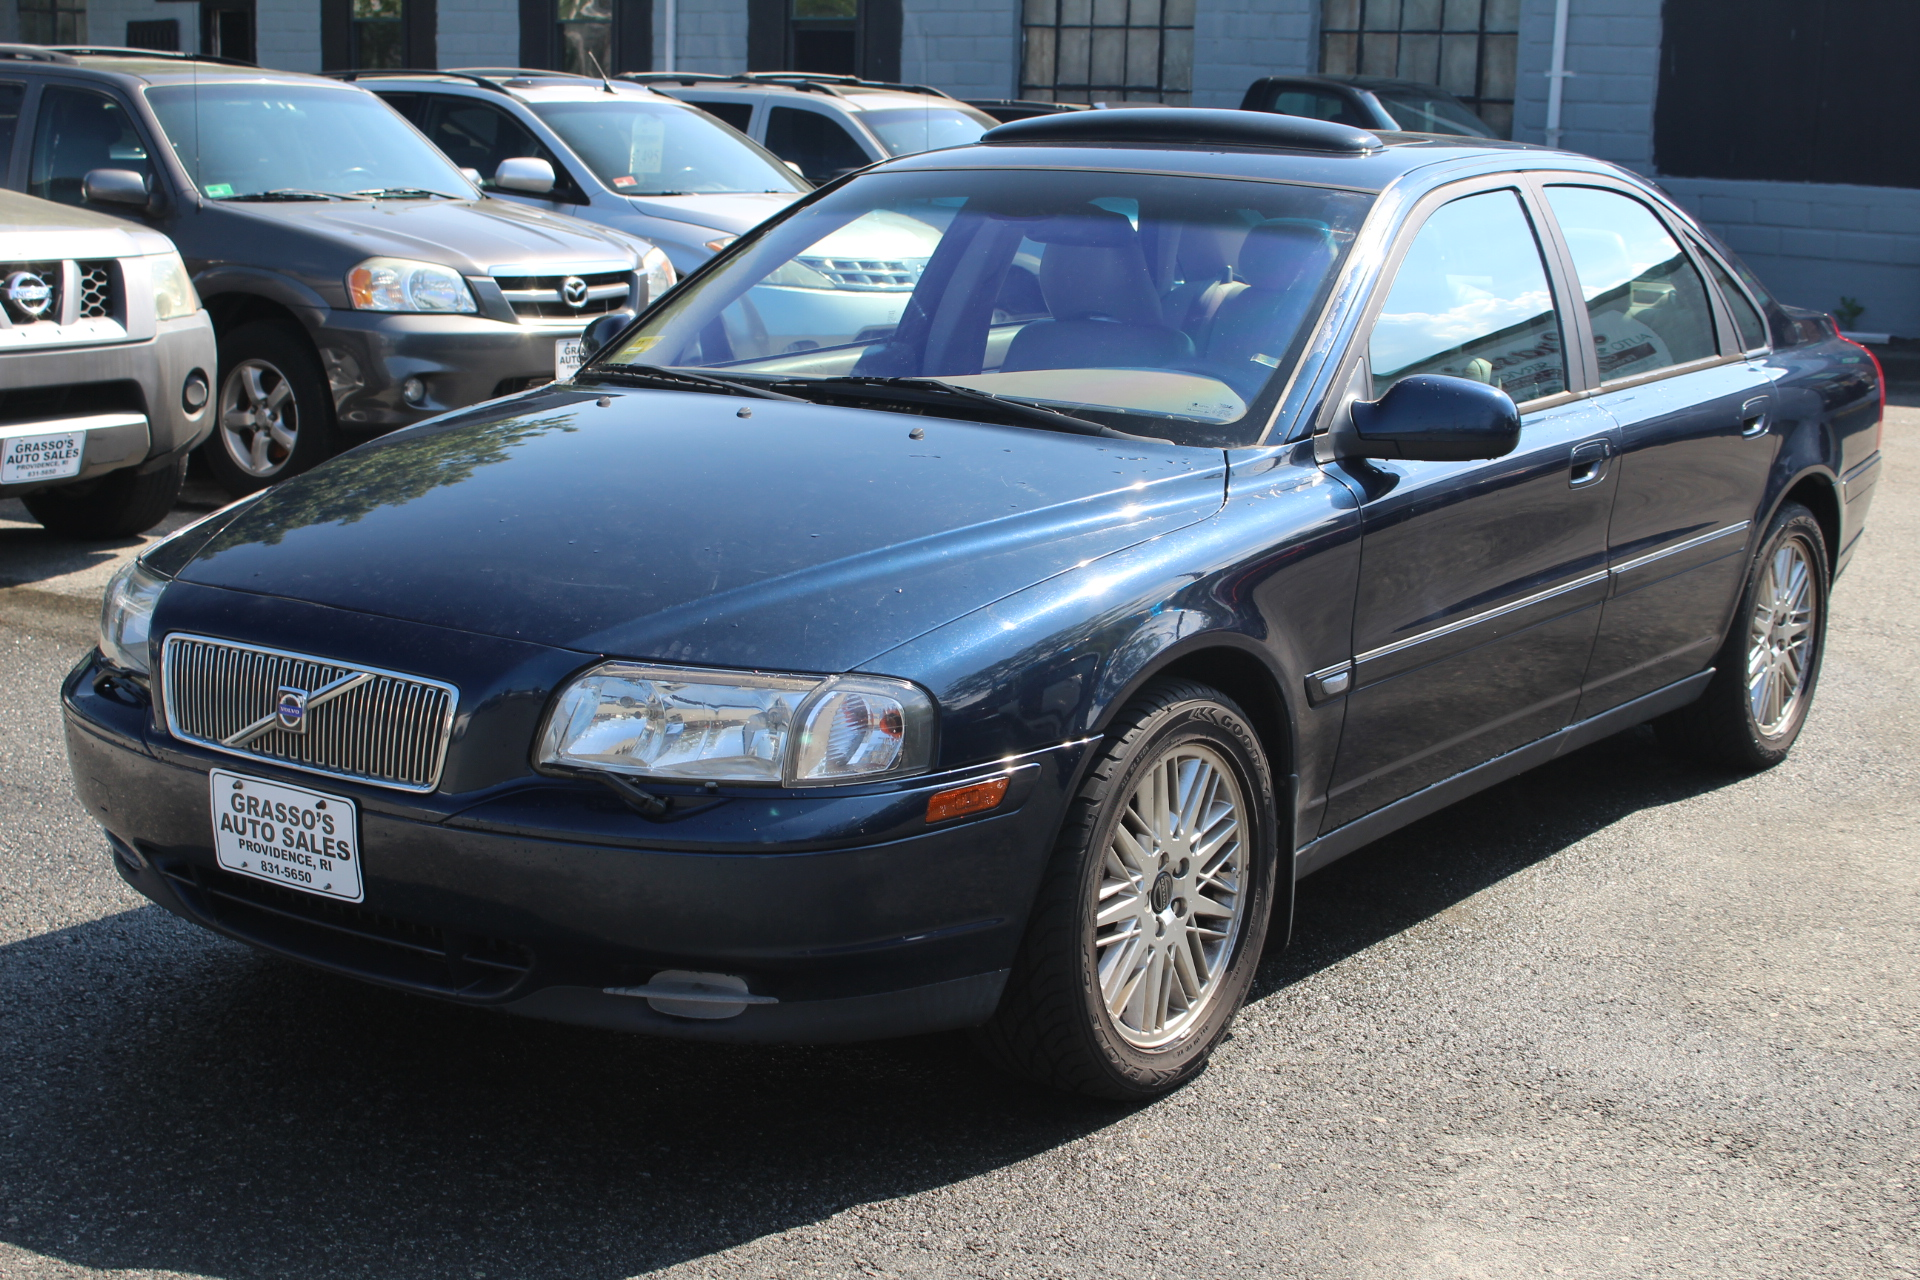 2003 Volvo S80 4dr Sdn 29L NON SMOKER  30 DETAILED SERVICE RECORDS  COMPLETELY SERVICED WITH A